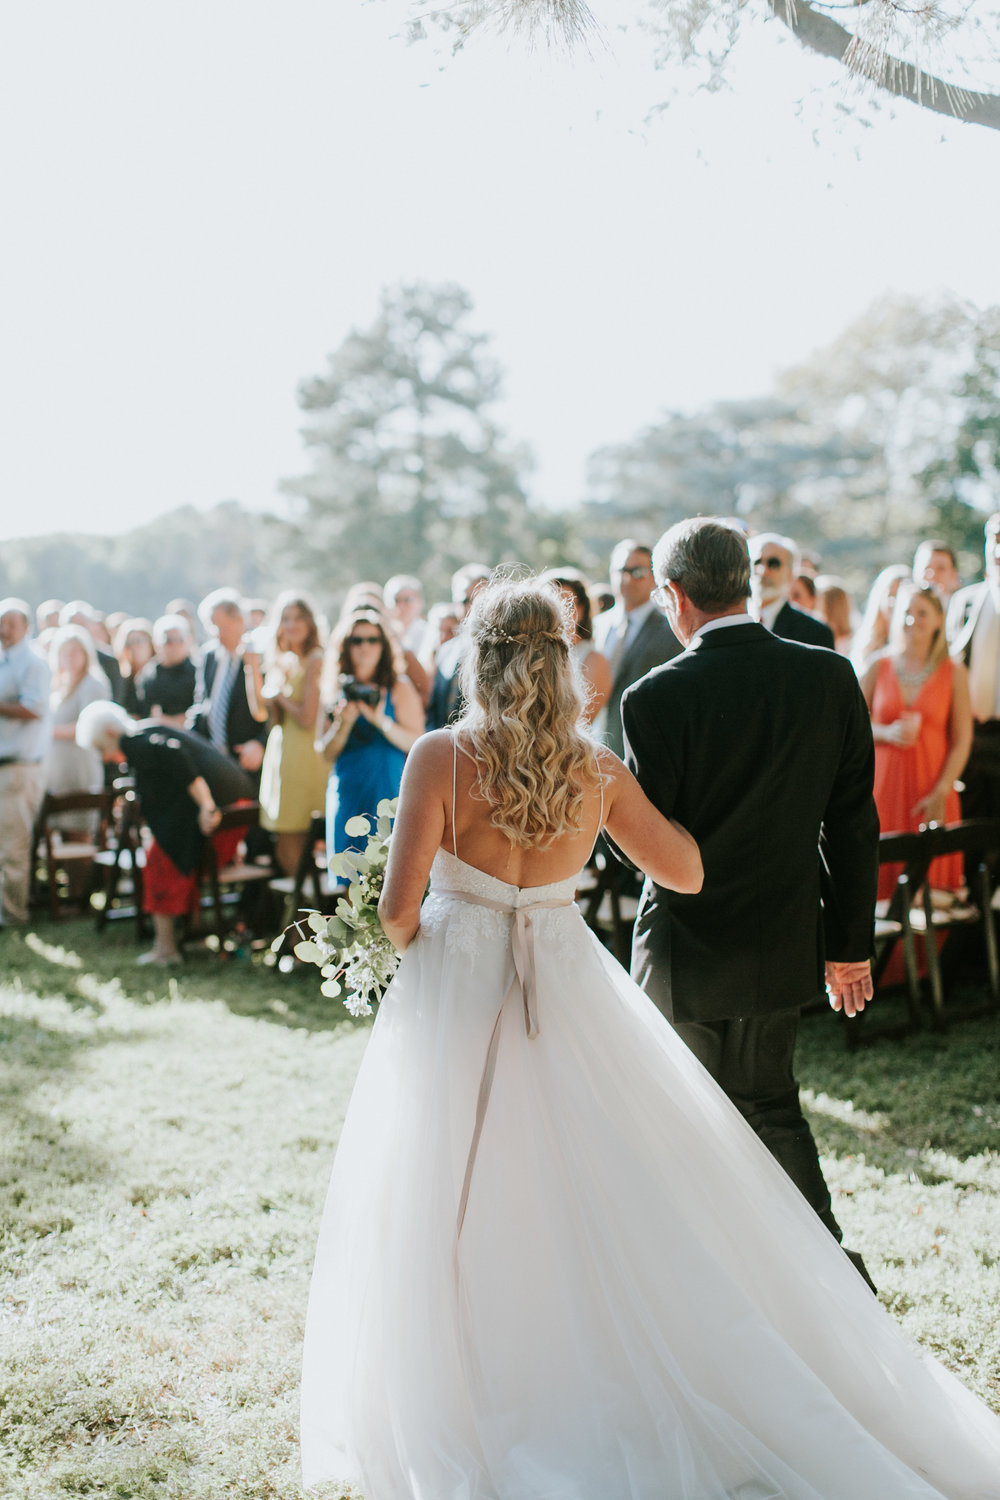 Rustic Oyster Themed Eastern Shore Maryland Outdoor Wedding by East Made Event Company Wedding Planner and Bekah Kay Creative734.jpg